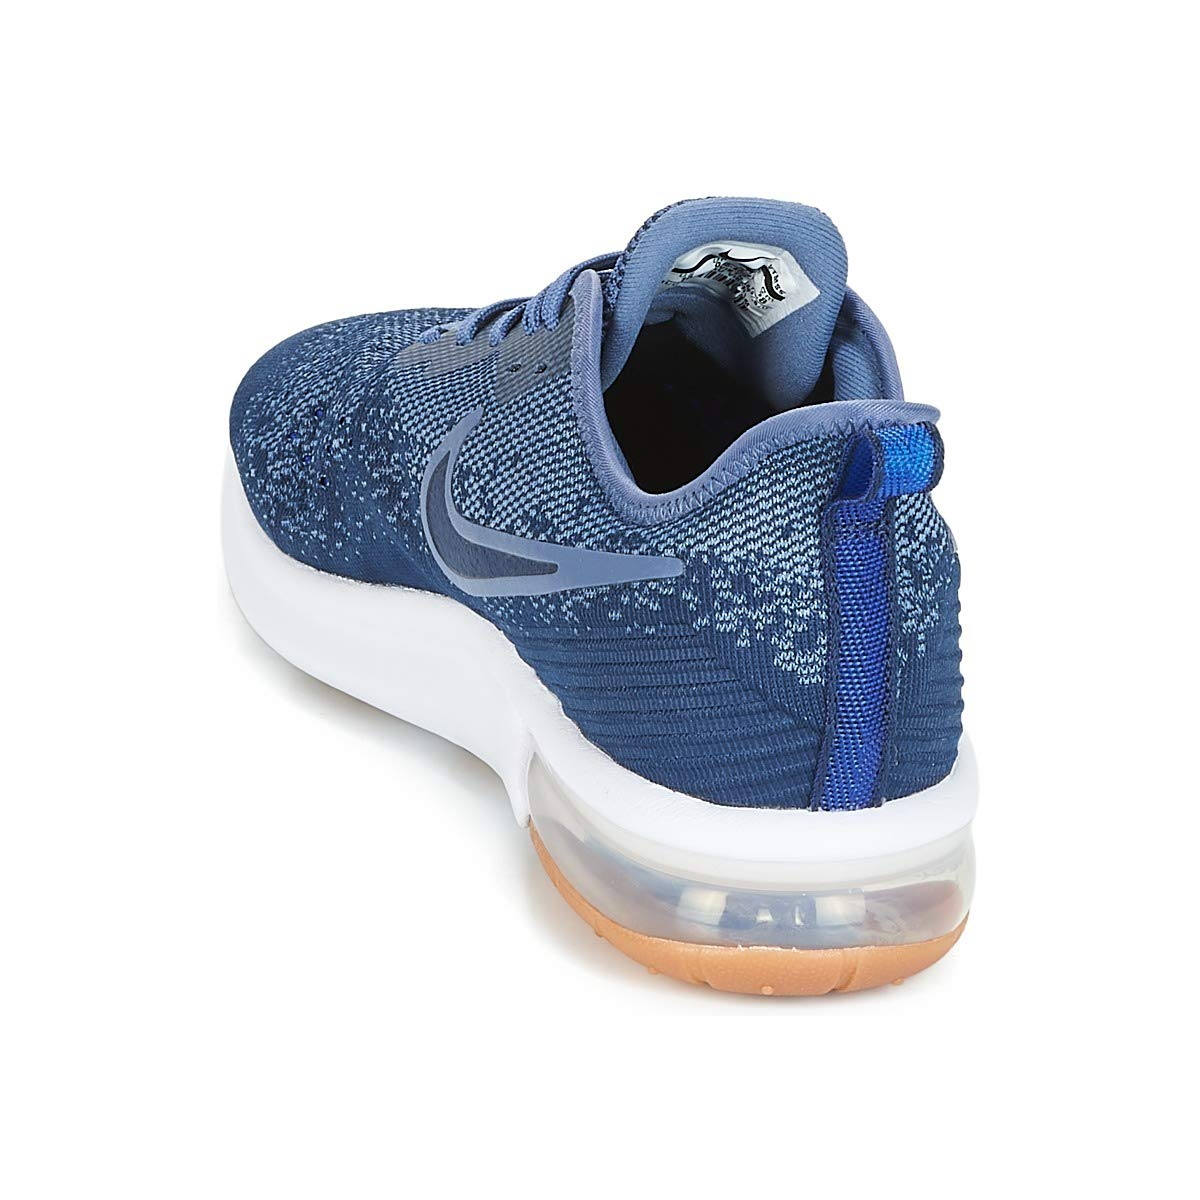 Nike Air Max Sequent 4 Herren Laufschuh midnight navyobsidian diffused blue AO4485 400